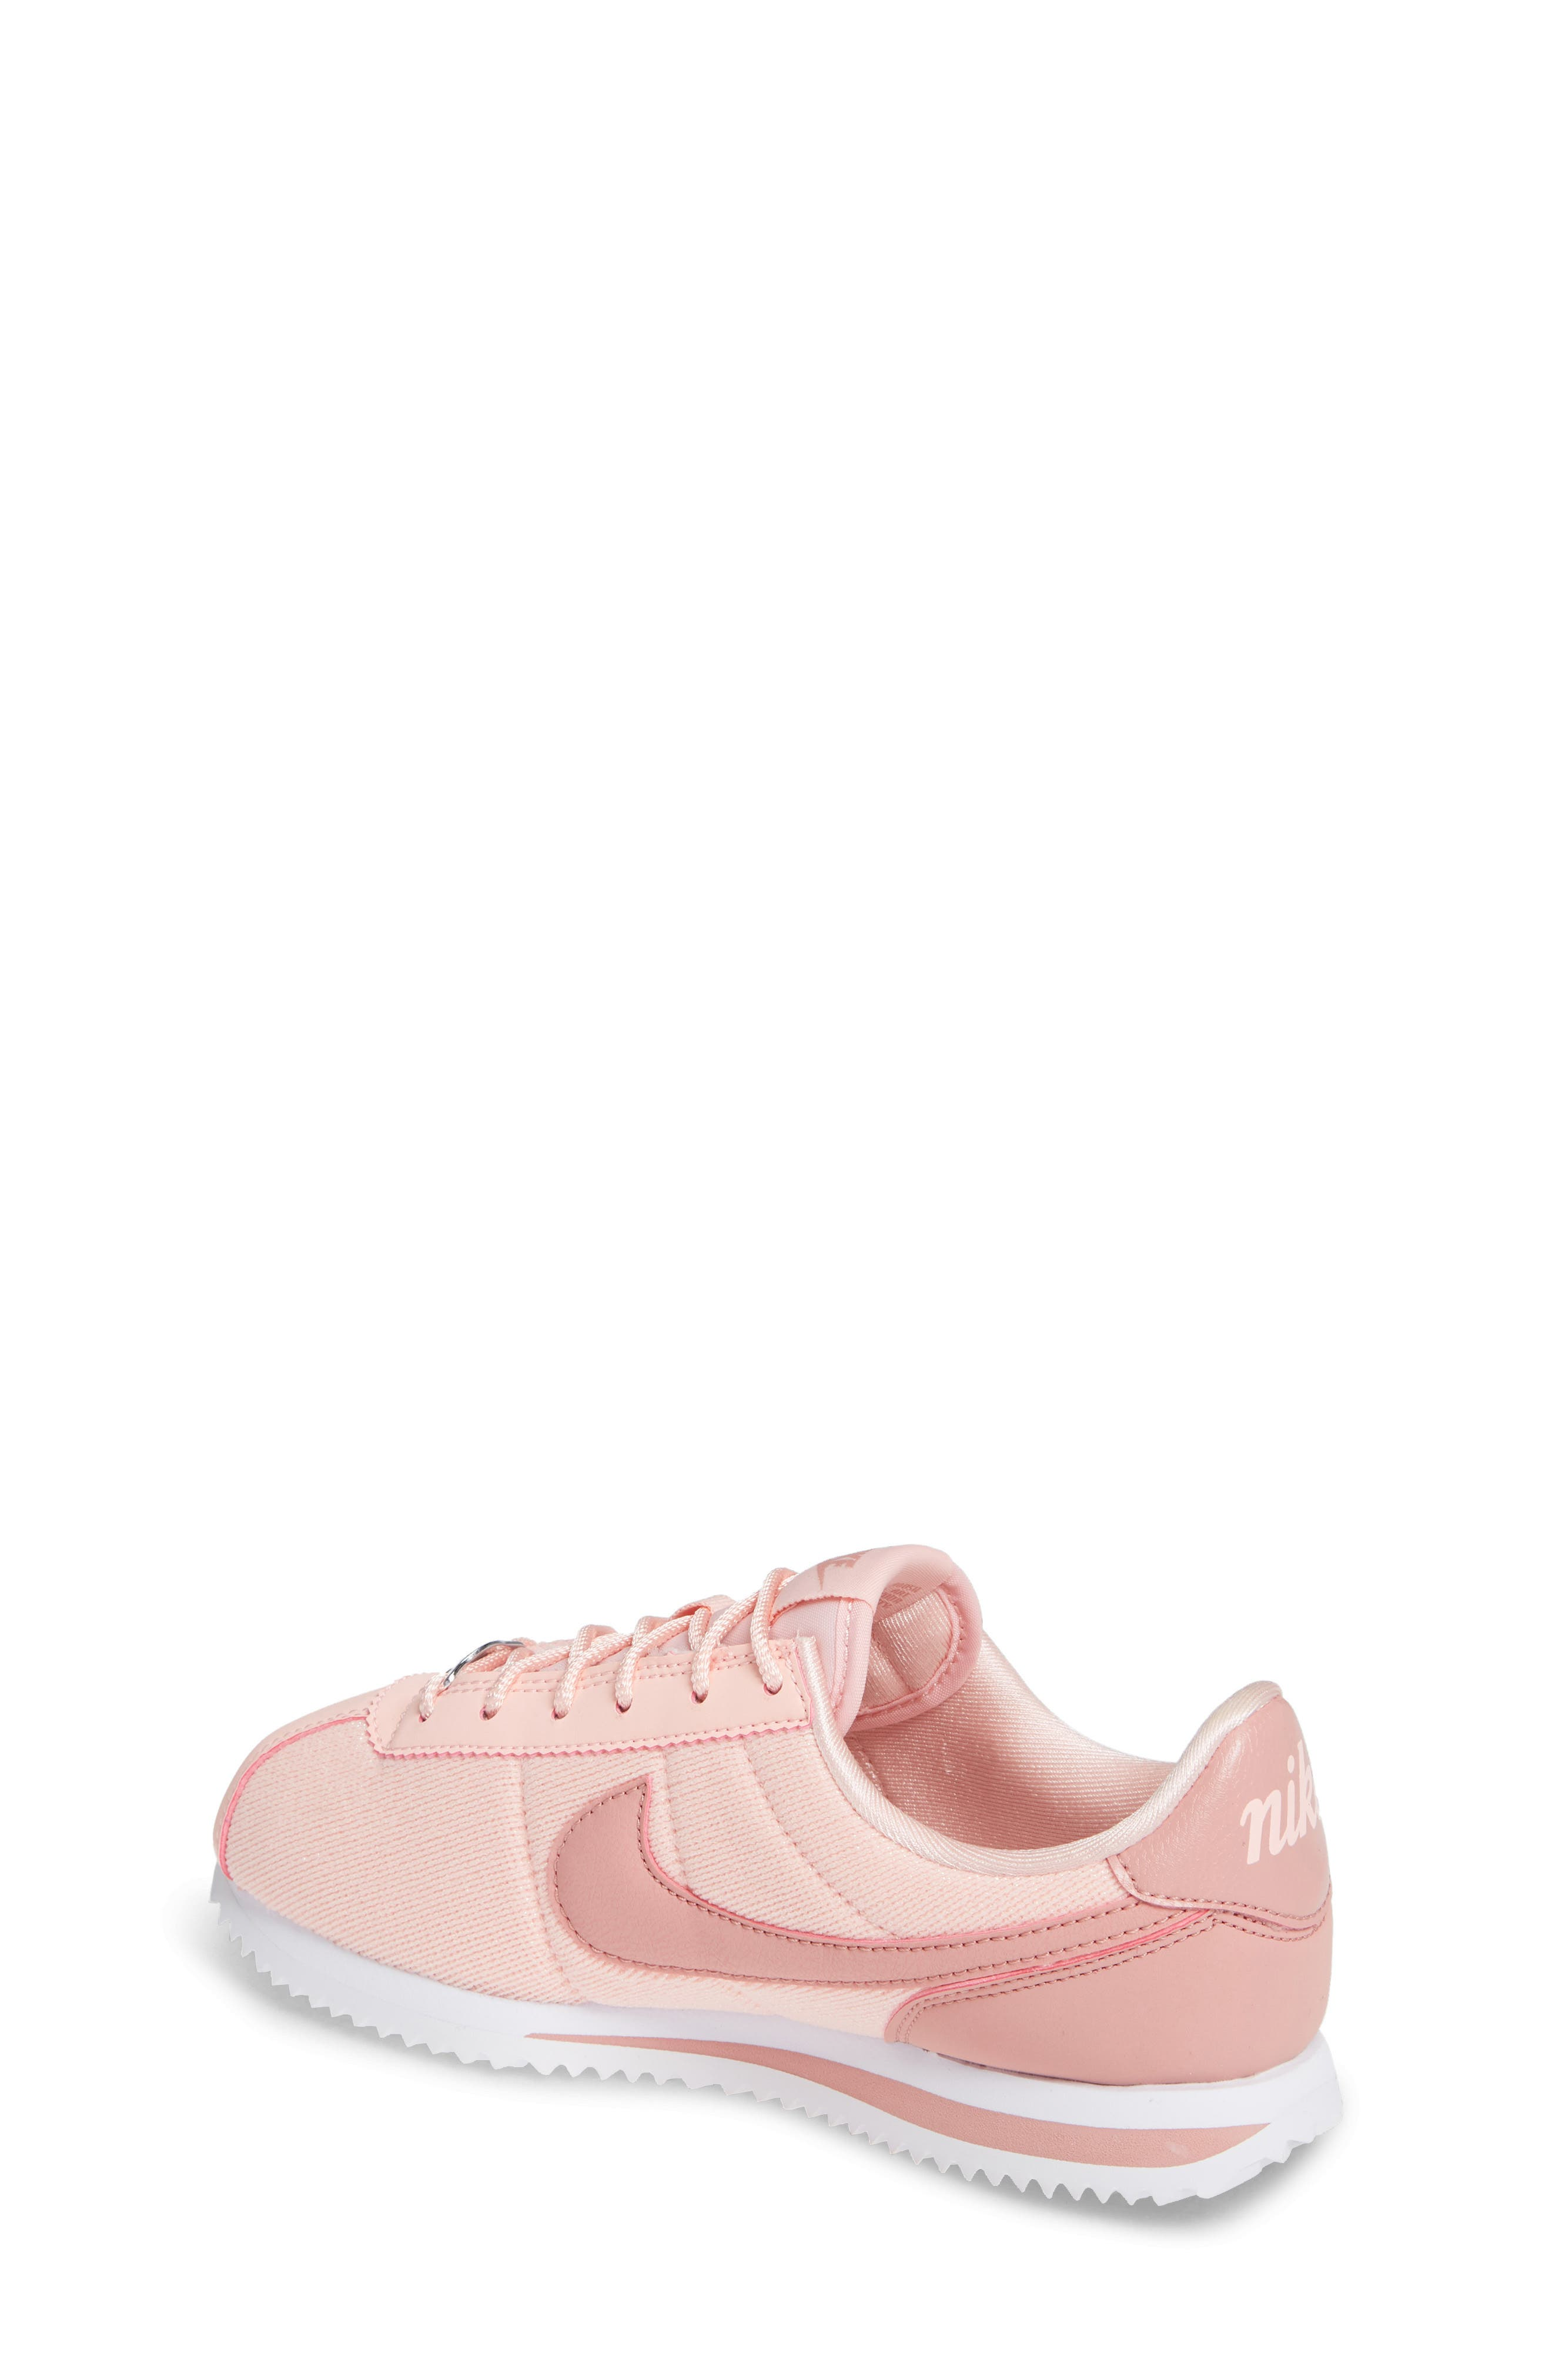 Cortez Basic TXT SE Sneaker,                             Alternate thumbnail 2, color,                             STORM PINK/ RUST PINK/ WHITE